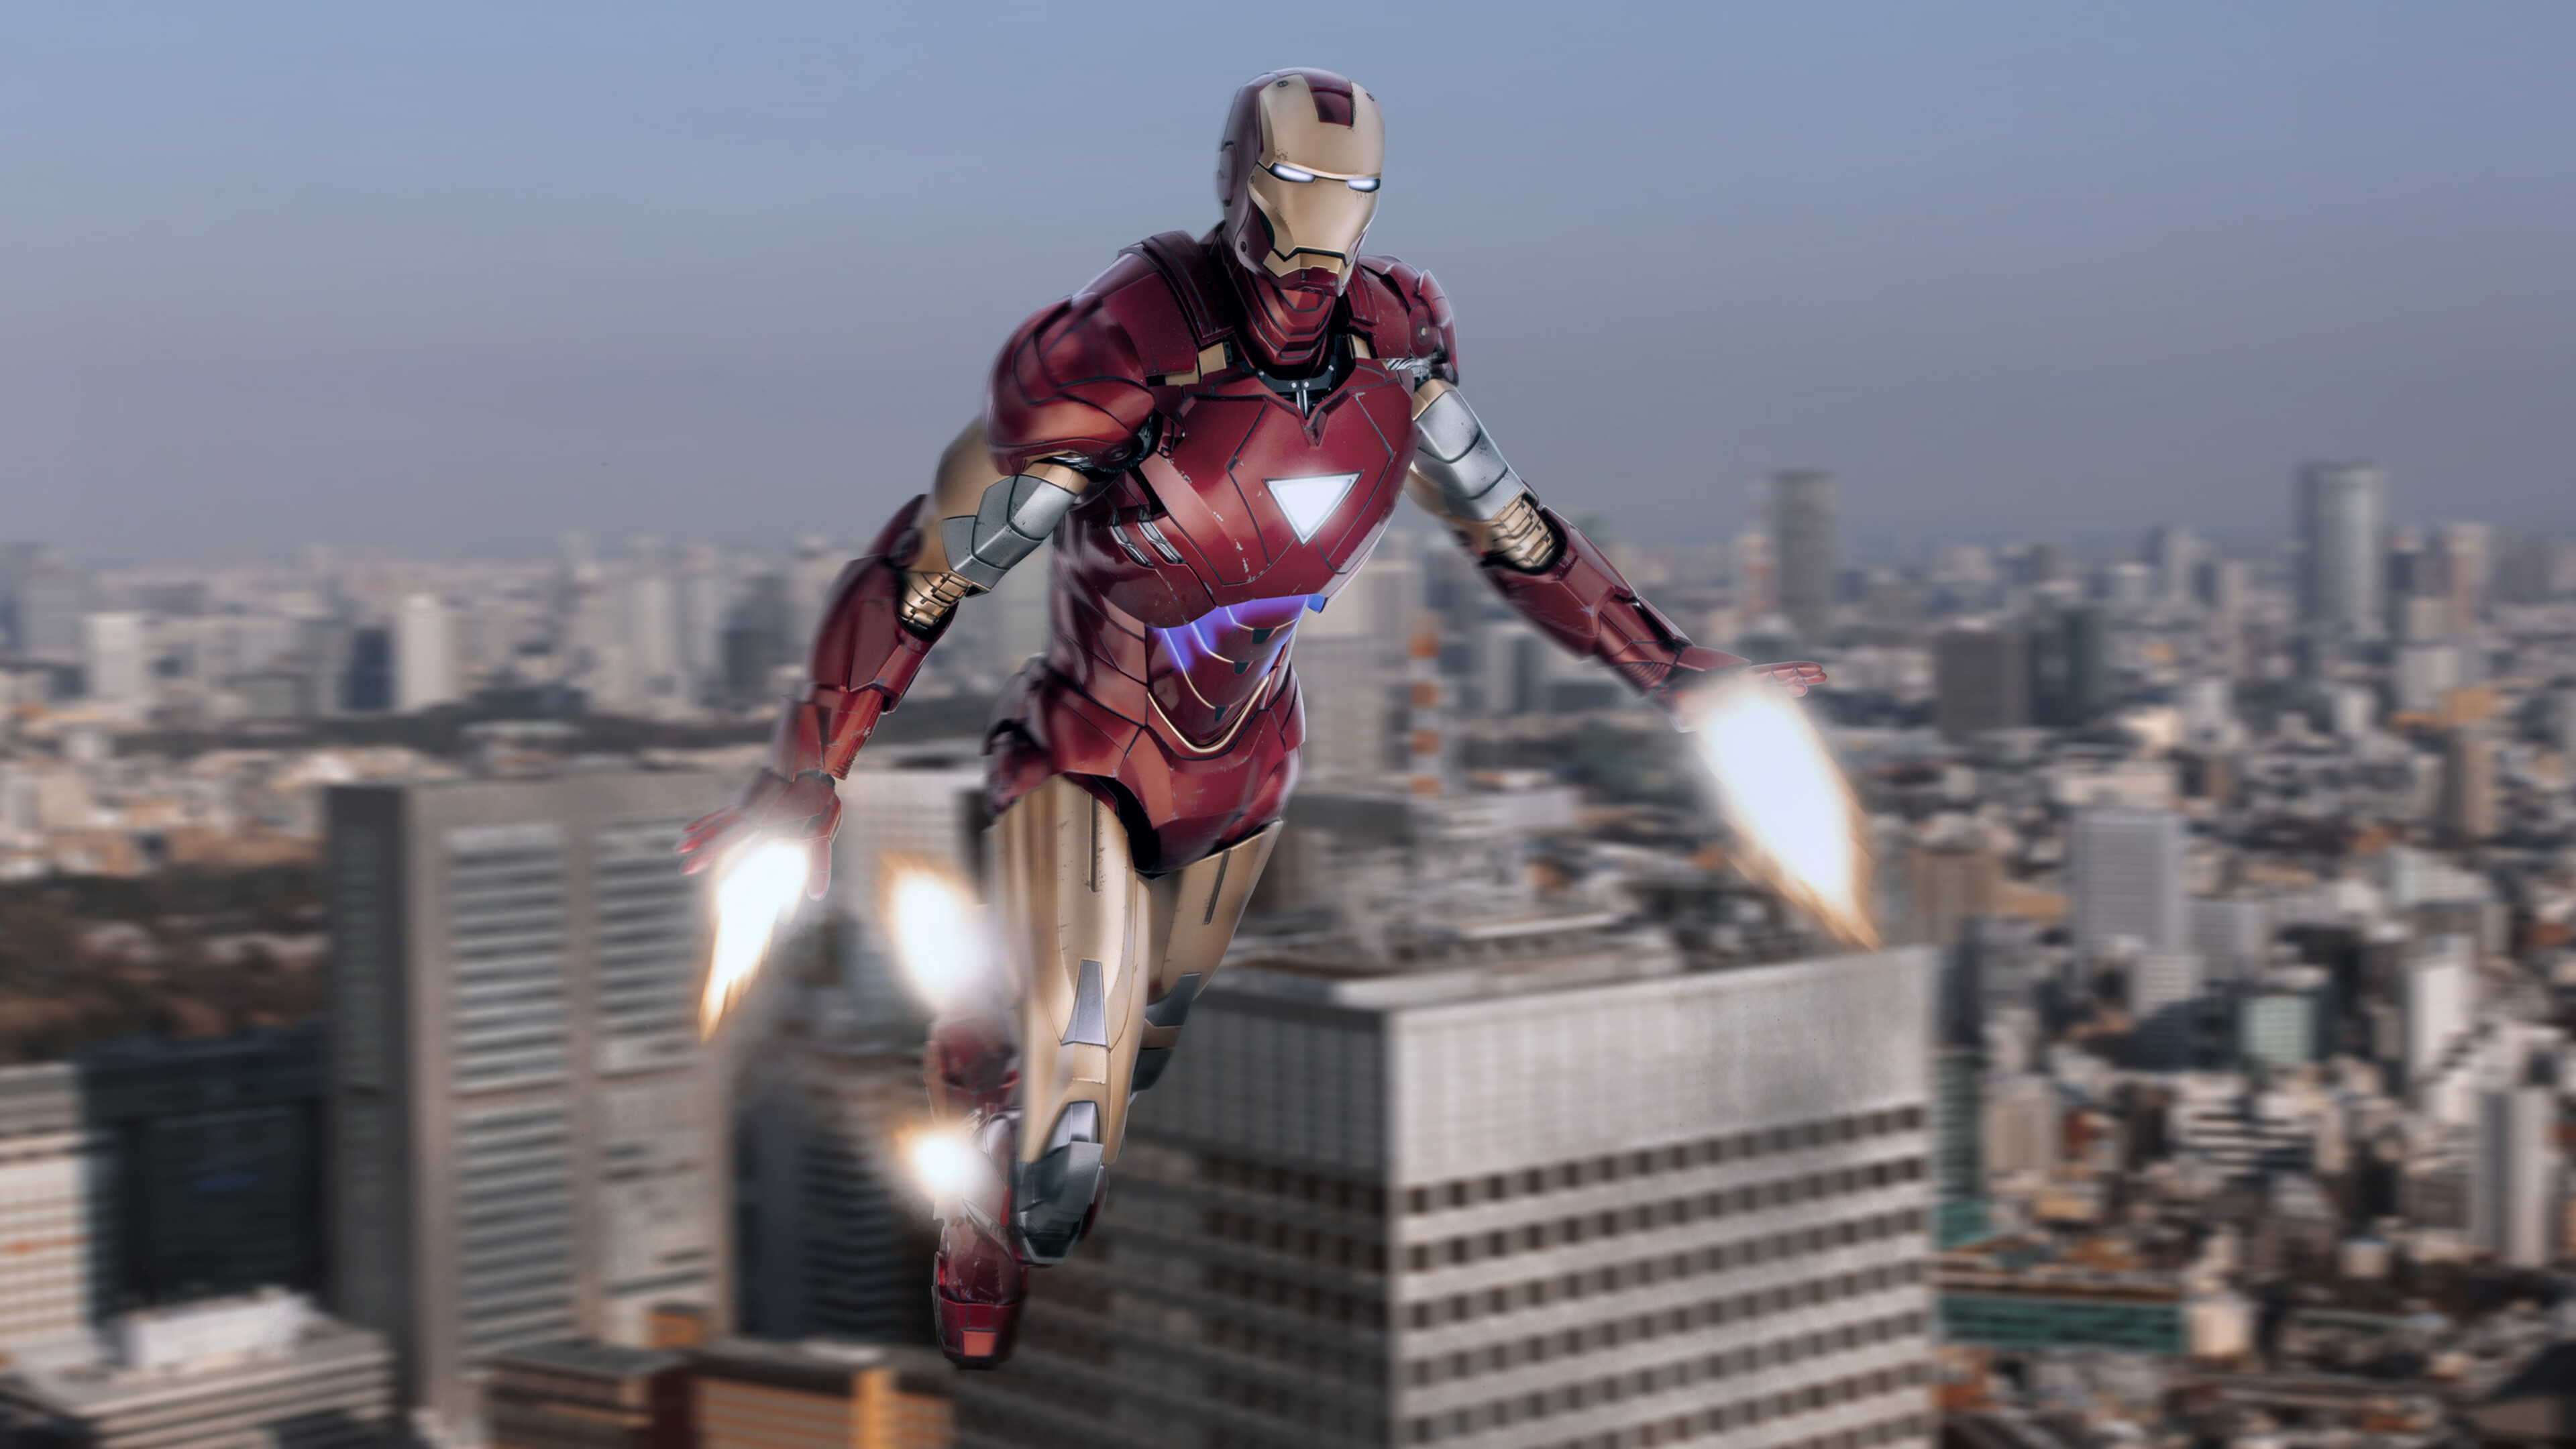 3840x2160 Out World Iron Man 4k 4k Hd 4k Wallpapers Images